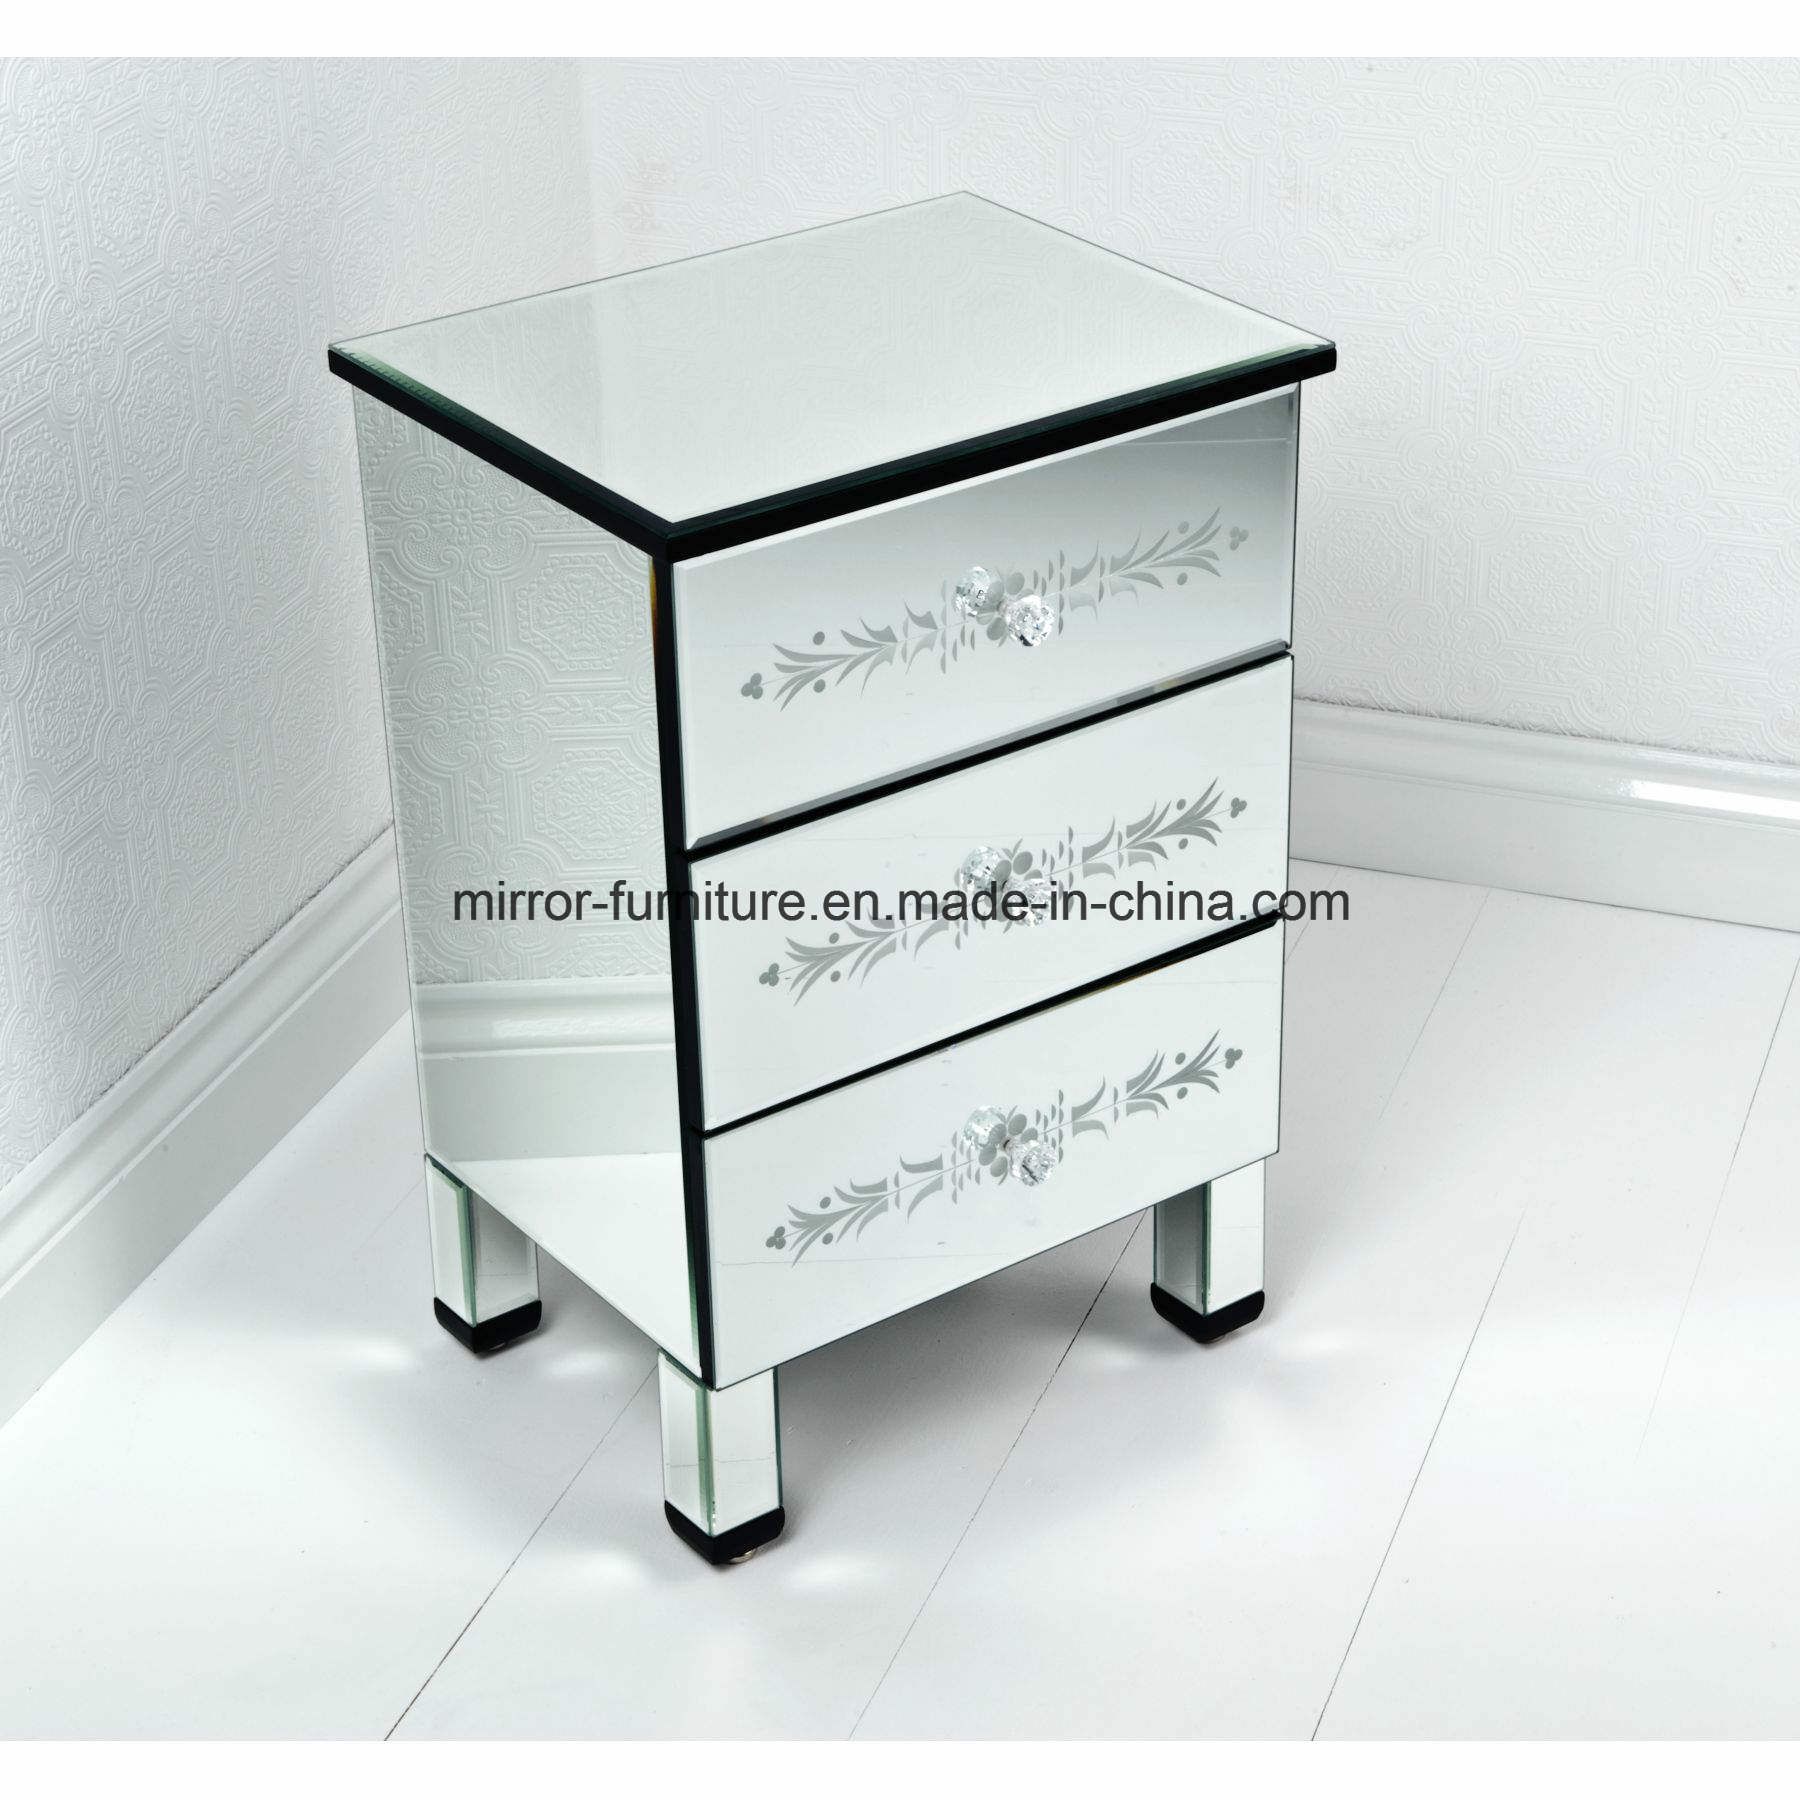 Hot Item Home Living Furniture Mirrored Bedside Table Mirrored End Table Mirrored Side Table